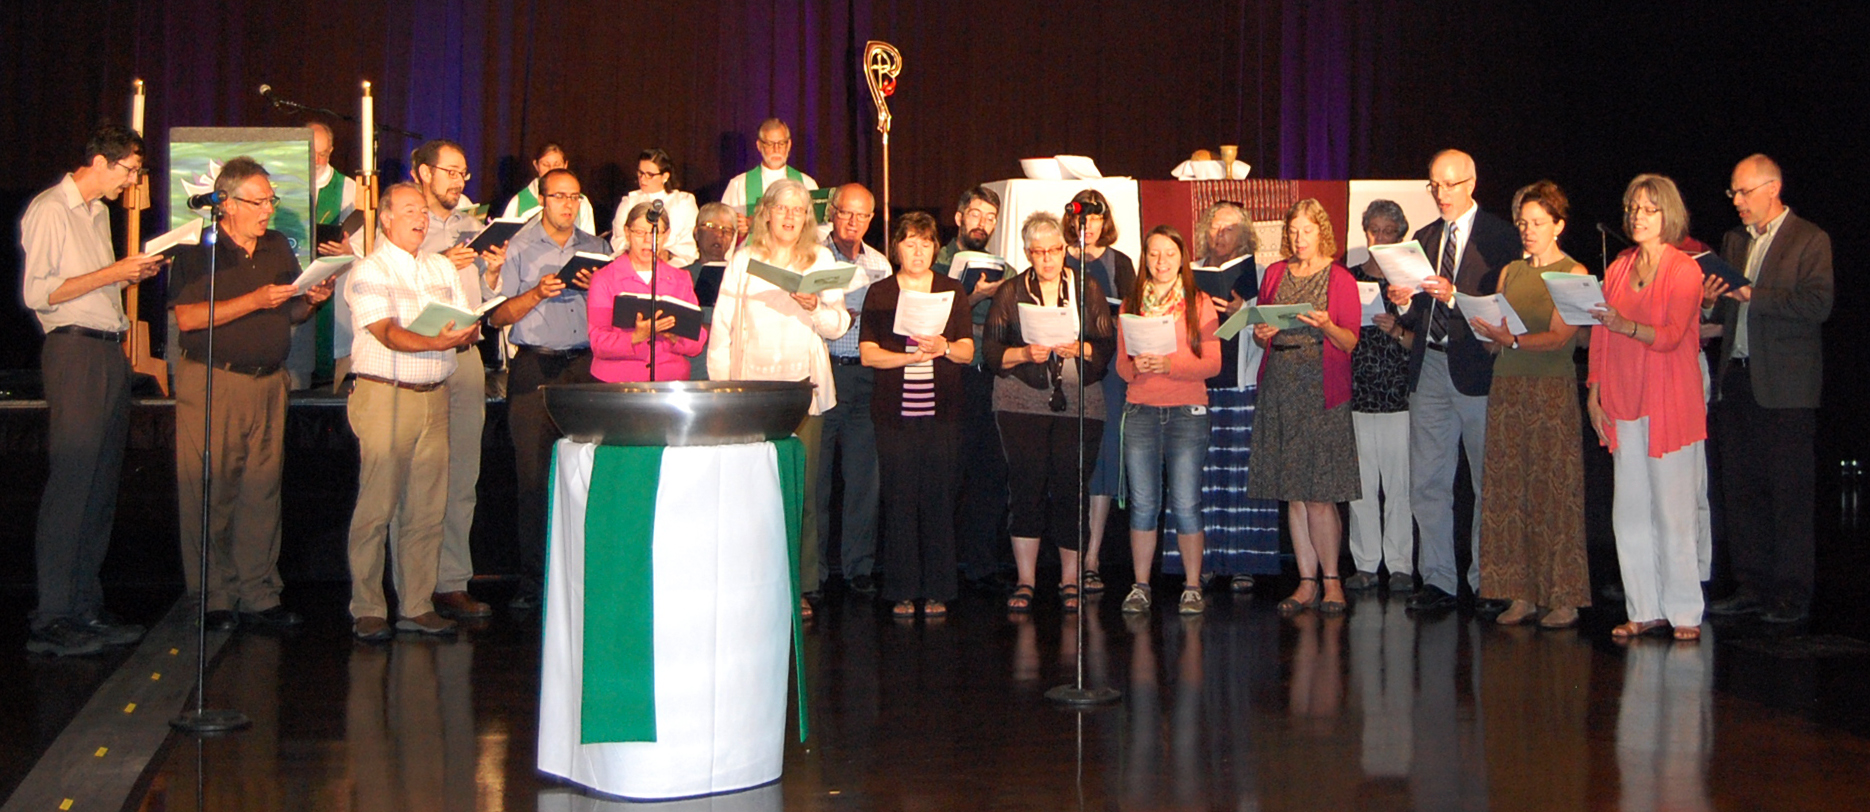 More than 20 Mennonites participated in a choir that led participants in hymns on June 11 during the closing worship at the annual assembly of the Indiana-Kentucky Synod assembly of the Evangelical Lutheran Church in America in South Bend, Indiana. (Photo by Leslie French, Indiana-Kentucky Synod Communicator)